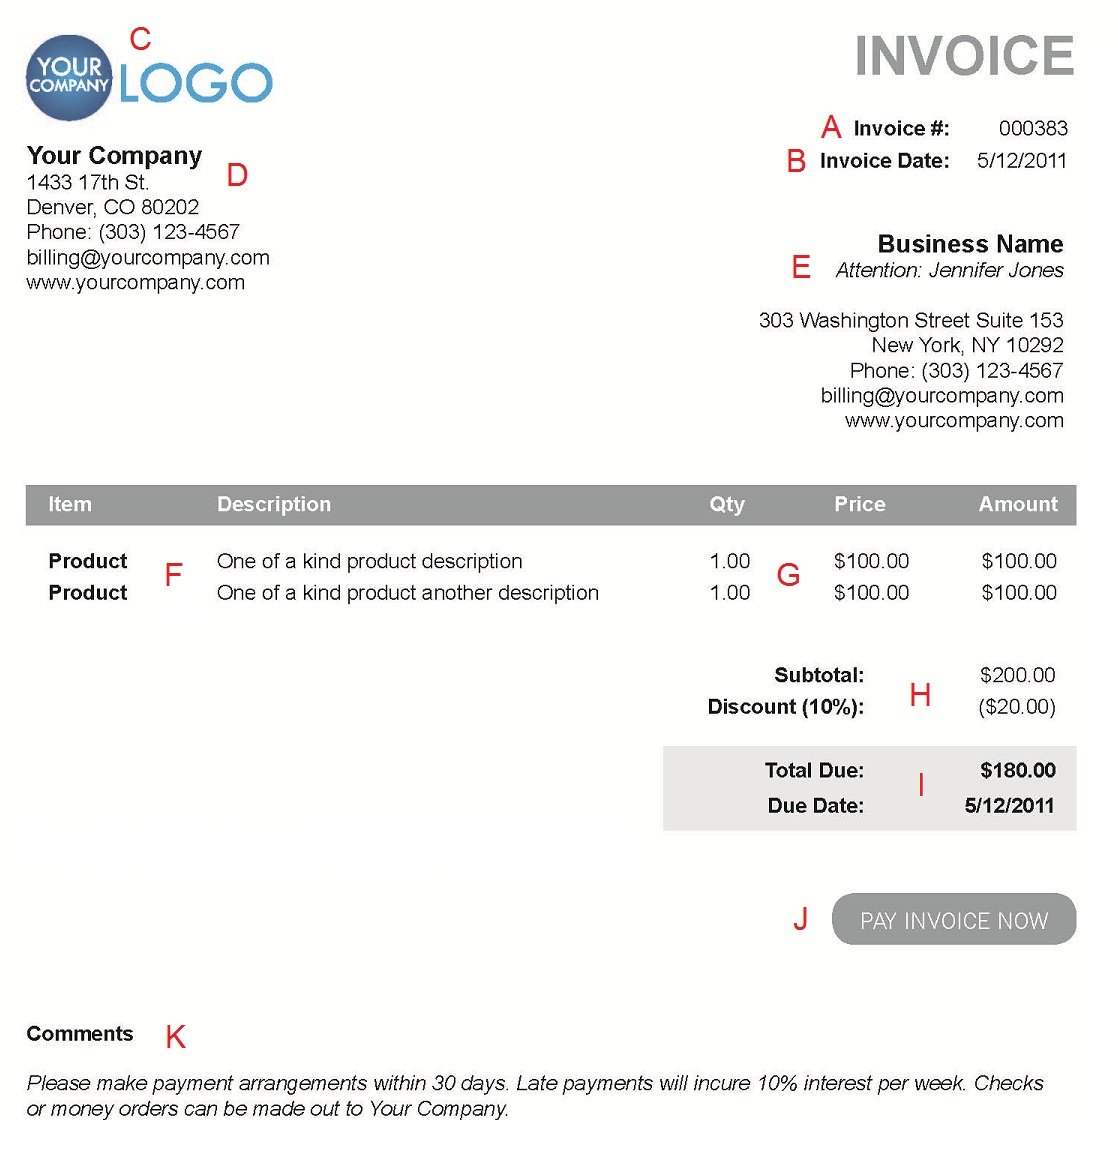 Reliefworkersus  Outstanding The  Different Sections Of An Electronic Payment Invoice With Fascinating A  With Captivating Certified Mail With Return Receipt Also Walmart Exchange Policy Without Receipt In Addition Depository Receipt And Goods Receipt As Well As Usps Certified Mail Receipt Additionally Return Receipt Gmail From Paysimplecom With Reliefworkersus  Fascinating The  Different Sections Of An Electronic Payment Invoice With Captivating A  And Outstanding Certified Mail With Return Receipt Also Walmart Exchange Policy Without Receipt In Addition Depository Receipt From Paysimplecom